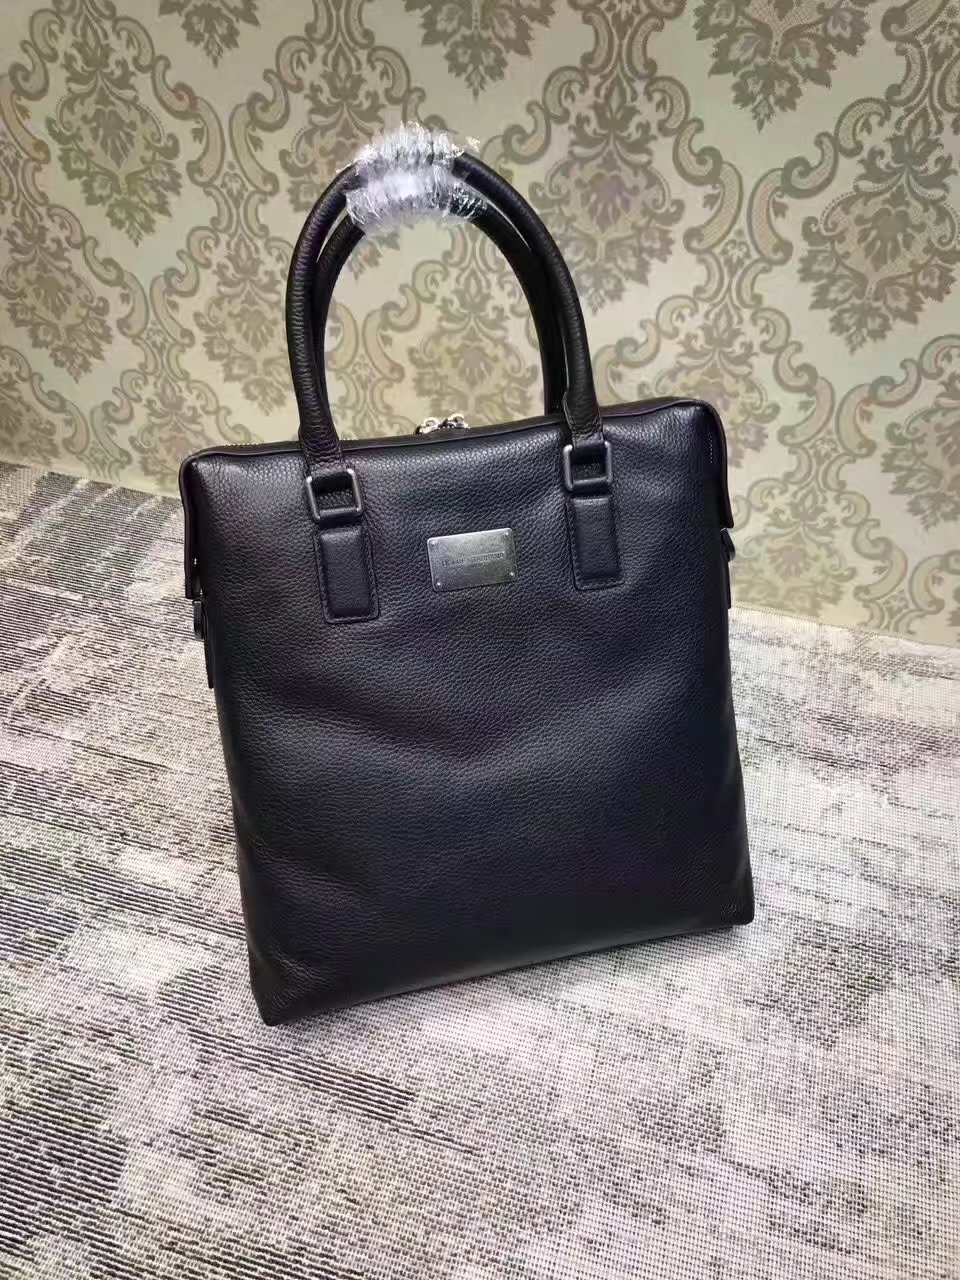 Dolce & Gabbana Men's Leather Tote Briefcase Black